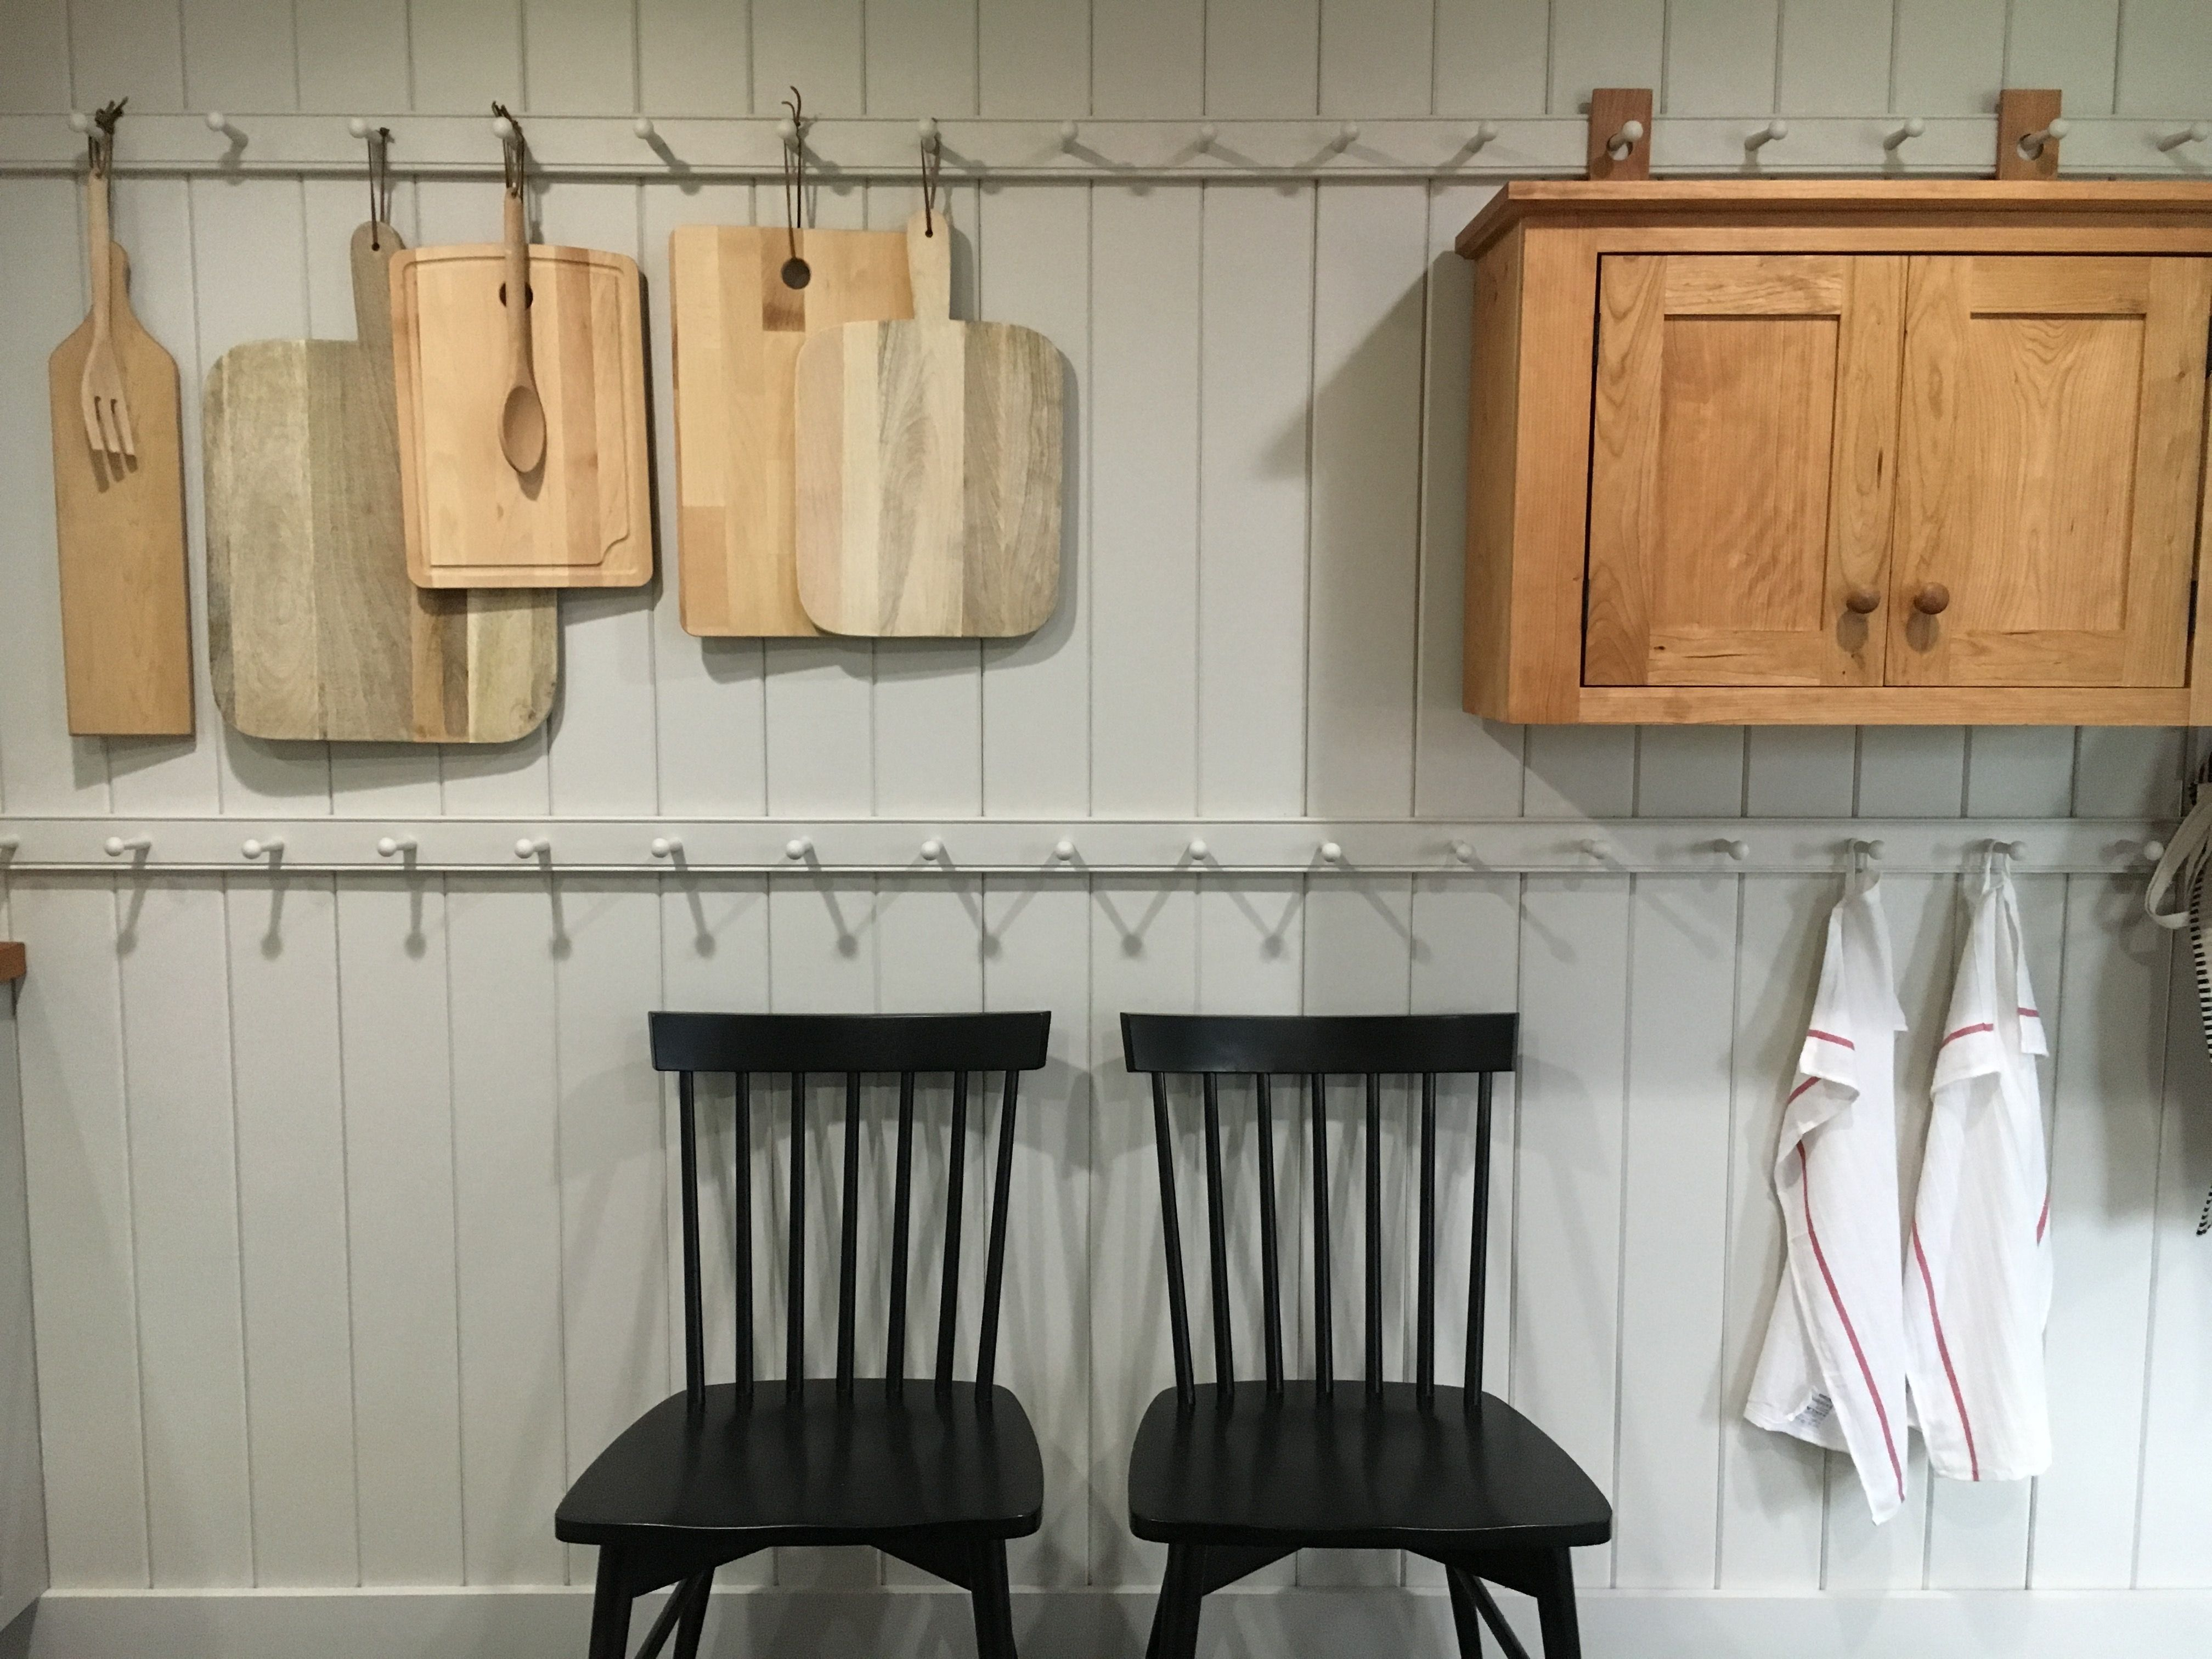 shaker style peg racks in a guest home kitchen. stone house